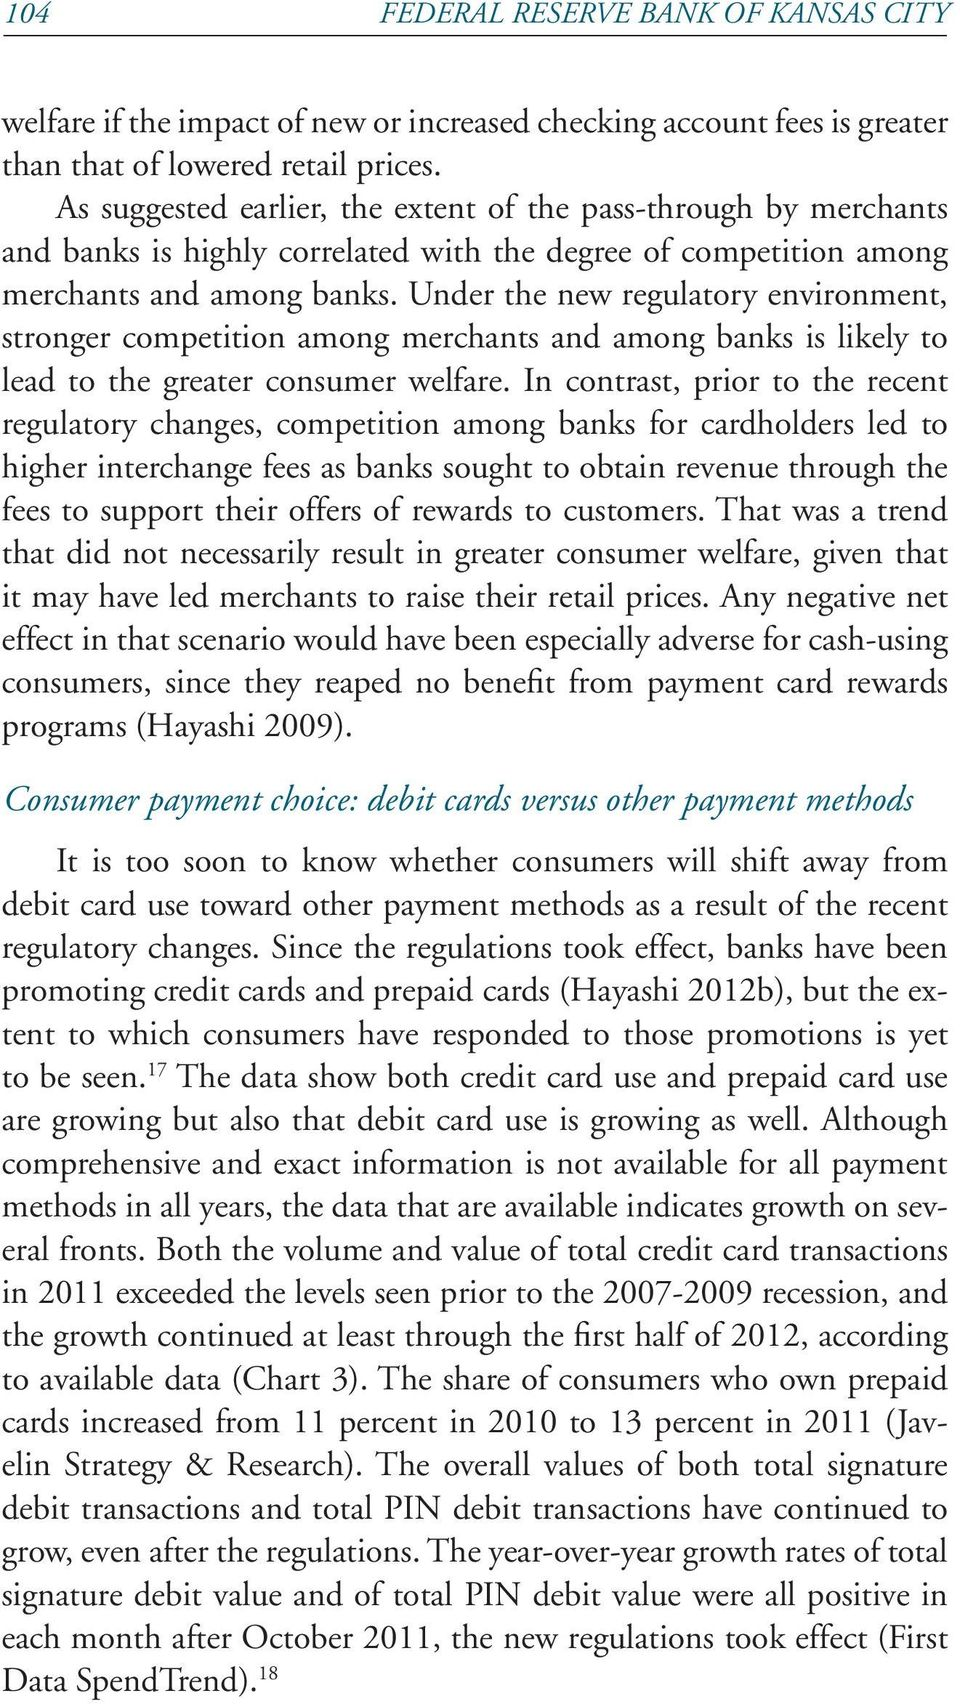 Under the new regulatory environment, stronger competition among merchants and among banks is likely to lead to the greater consumer welfare.